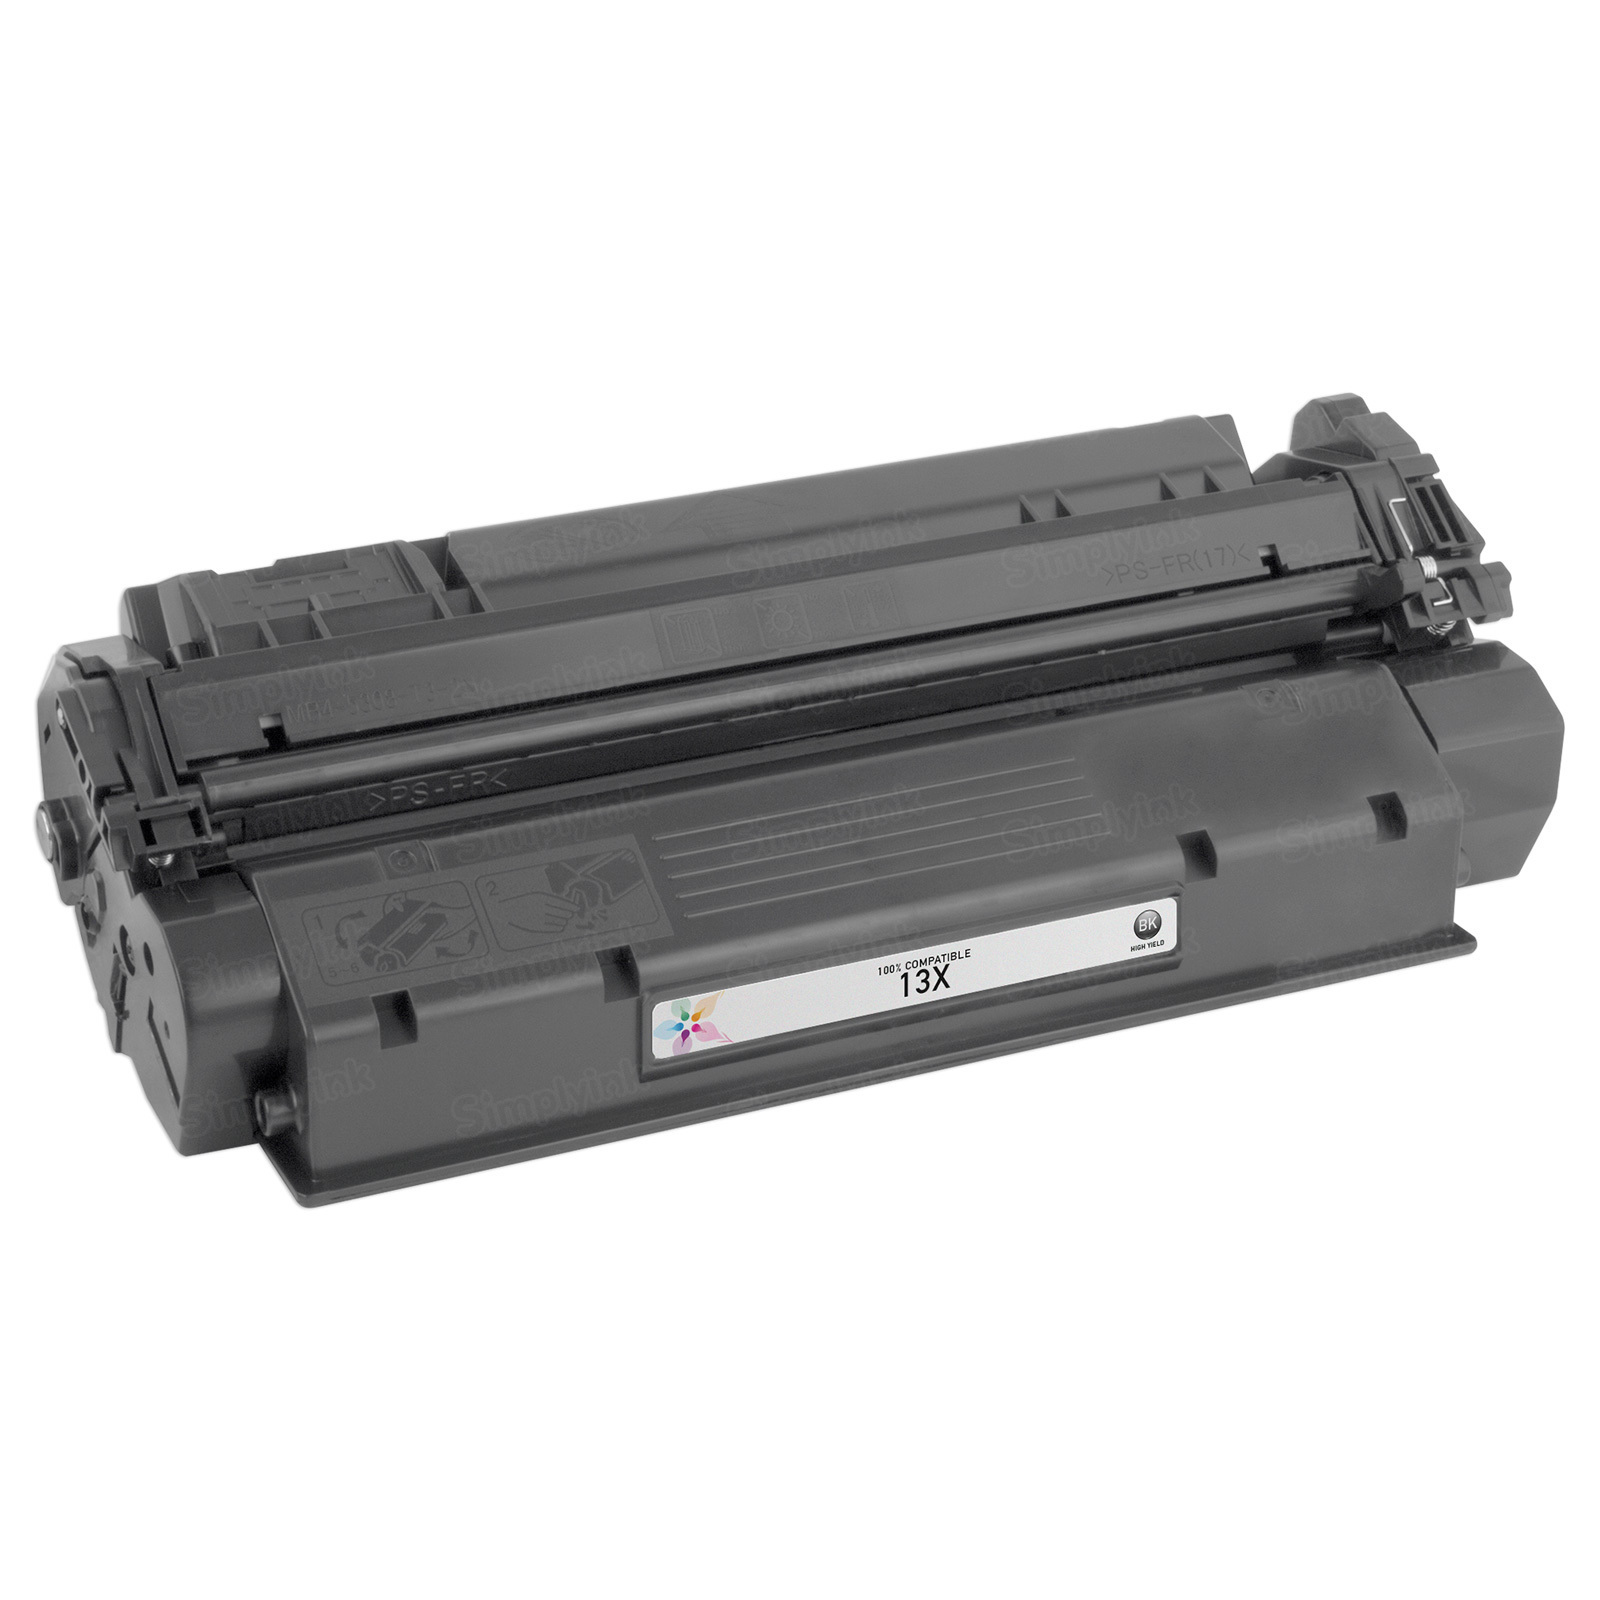 Remanufactured Replacement HY Black Laser Toner for HP 13X